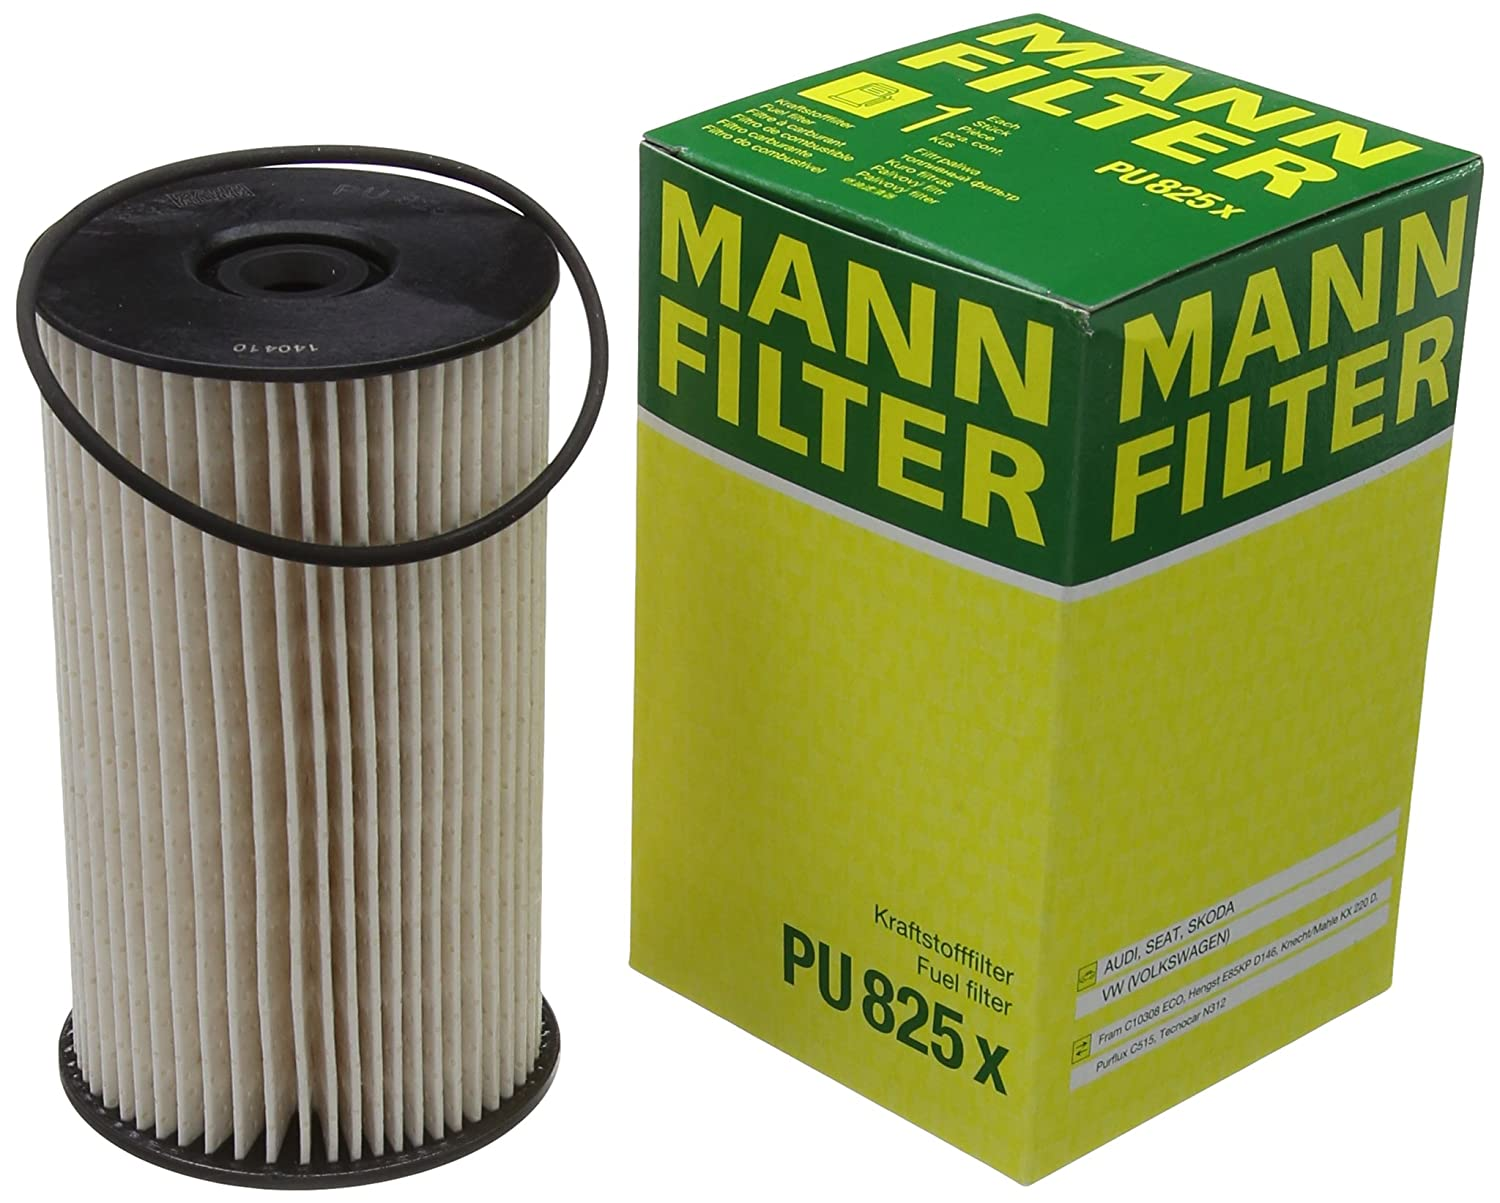 Fuel Filter Mann Wk 11030 Wiring Library 2007 Aveo Replacement Amazoncom Pu825x Element Metal Free Automotive